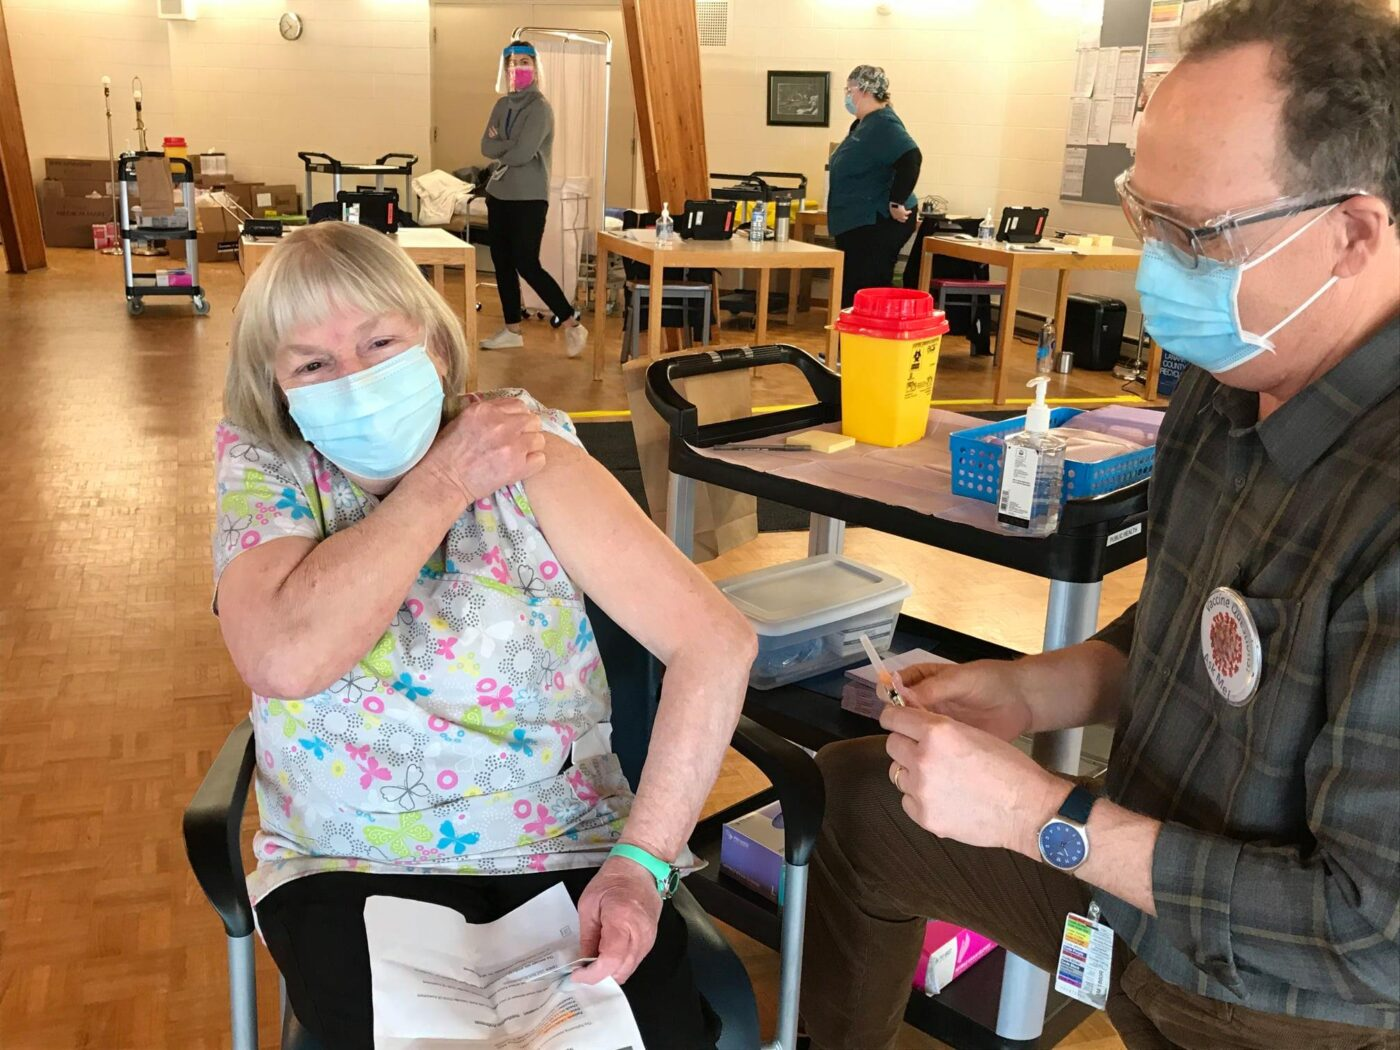 FRONT LINE WORKERS BEGIN TO RECEIVE COVID-19 VACCINE